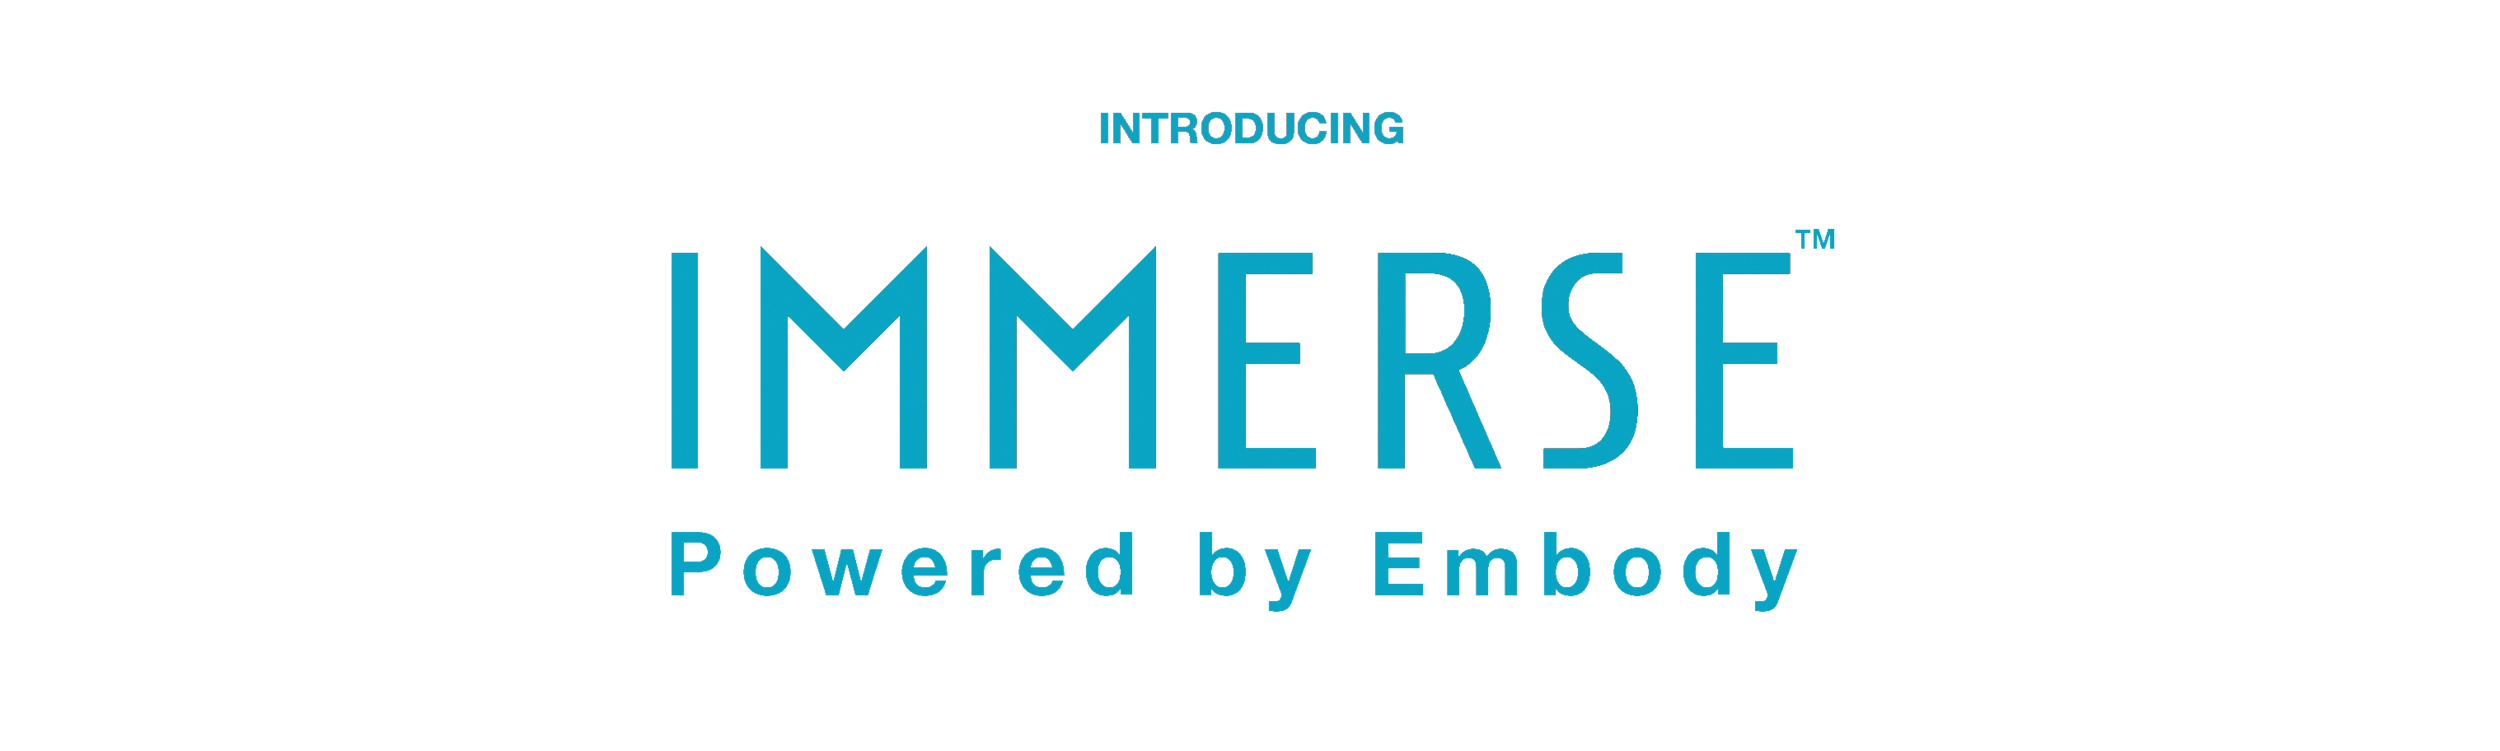 Introducing Immerse Logo.png